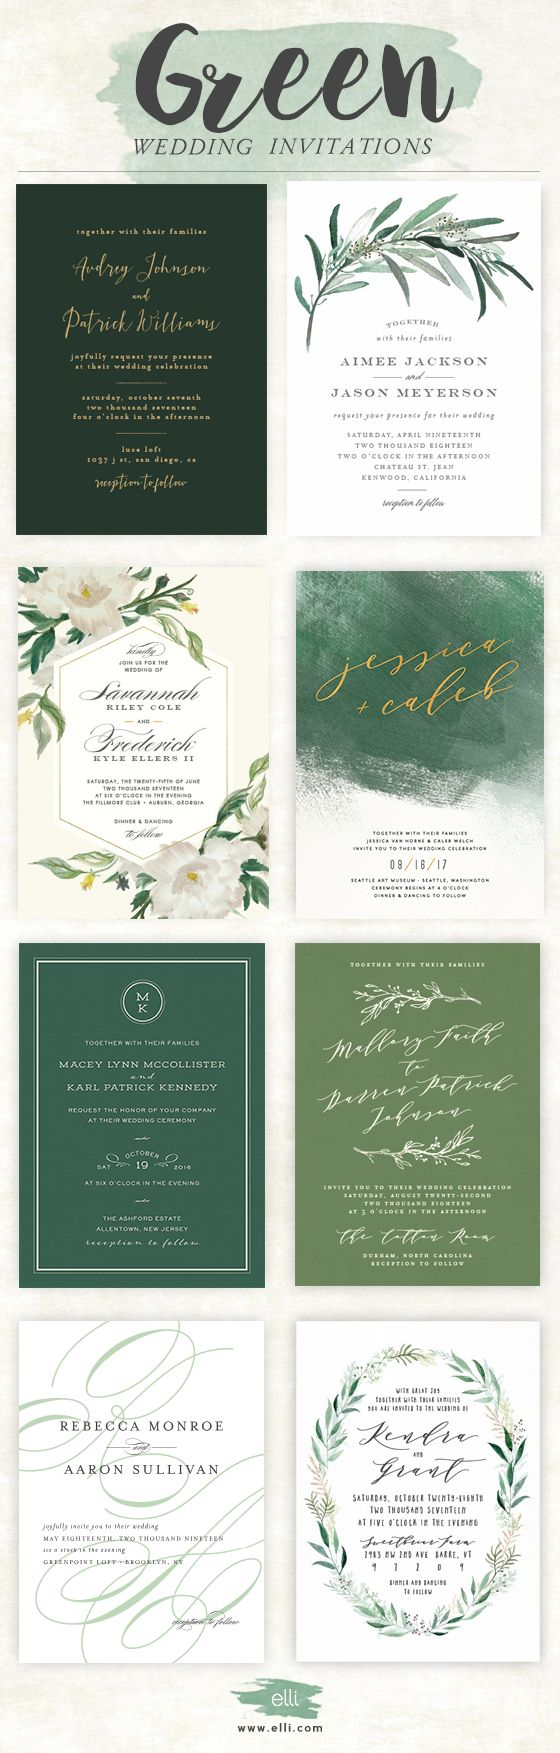 wedding invitation photo%0A Gorgeous selection of green wedding invitations from Elli com